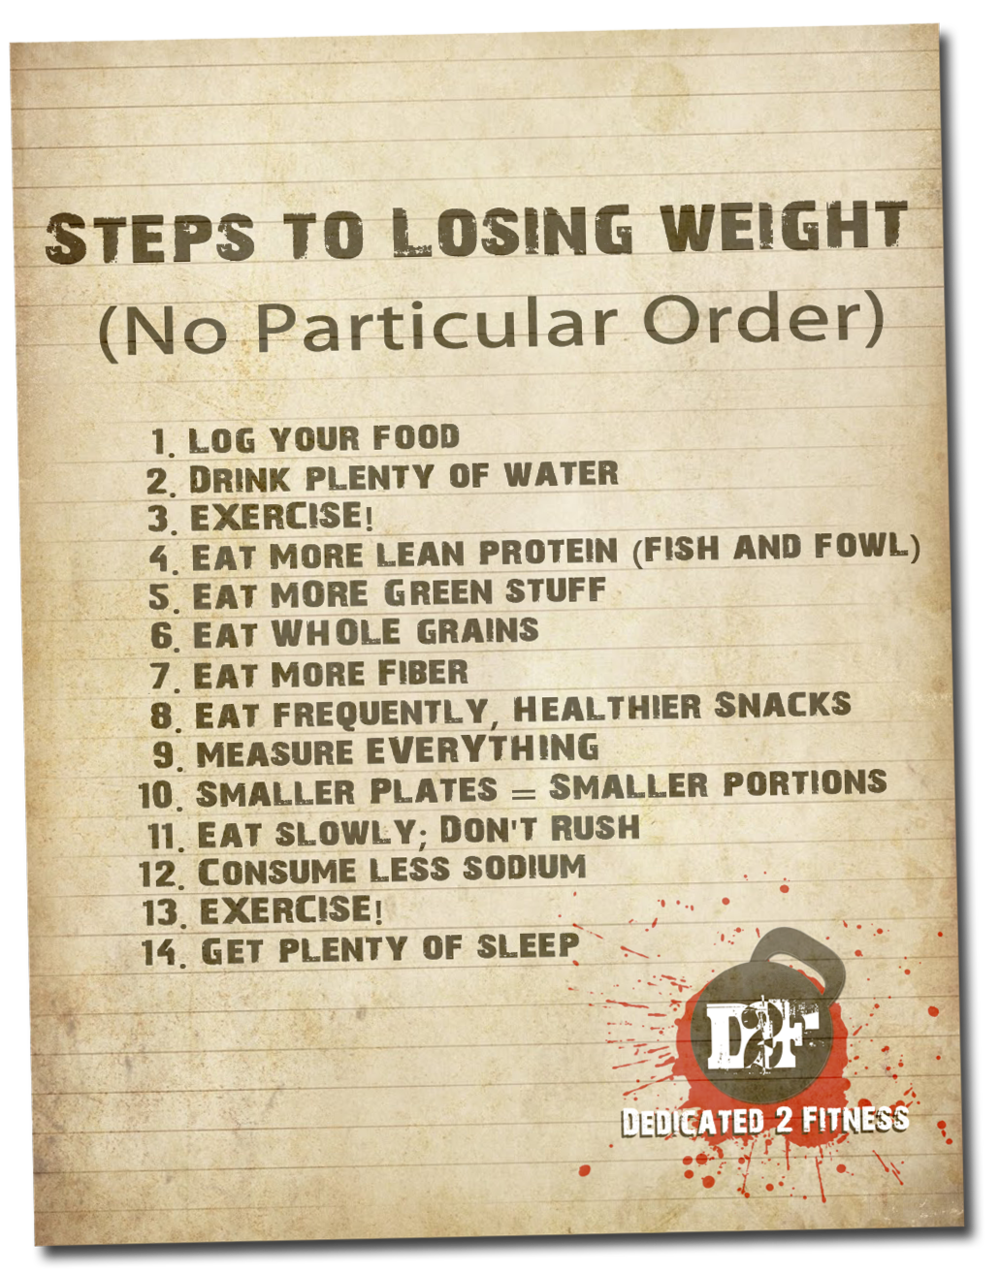 D2F_Weight_Loss_Checklist.png